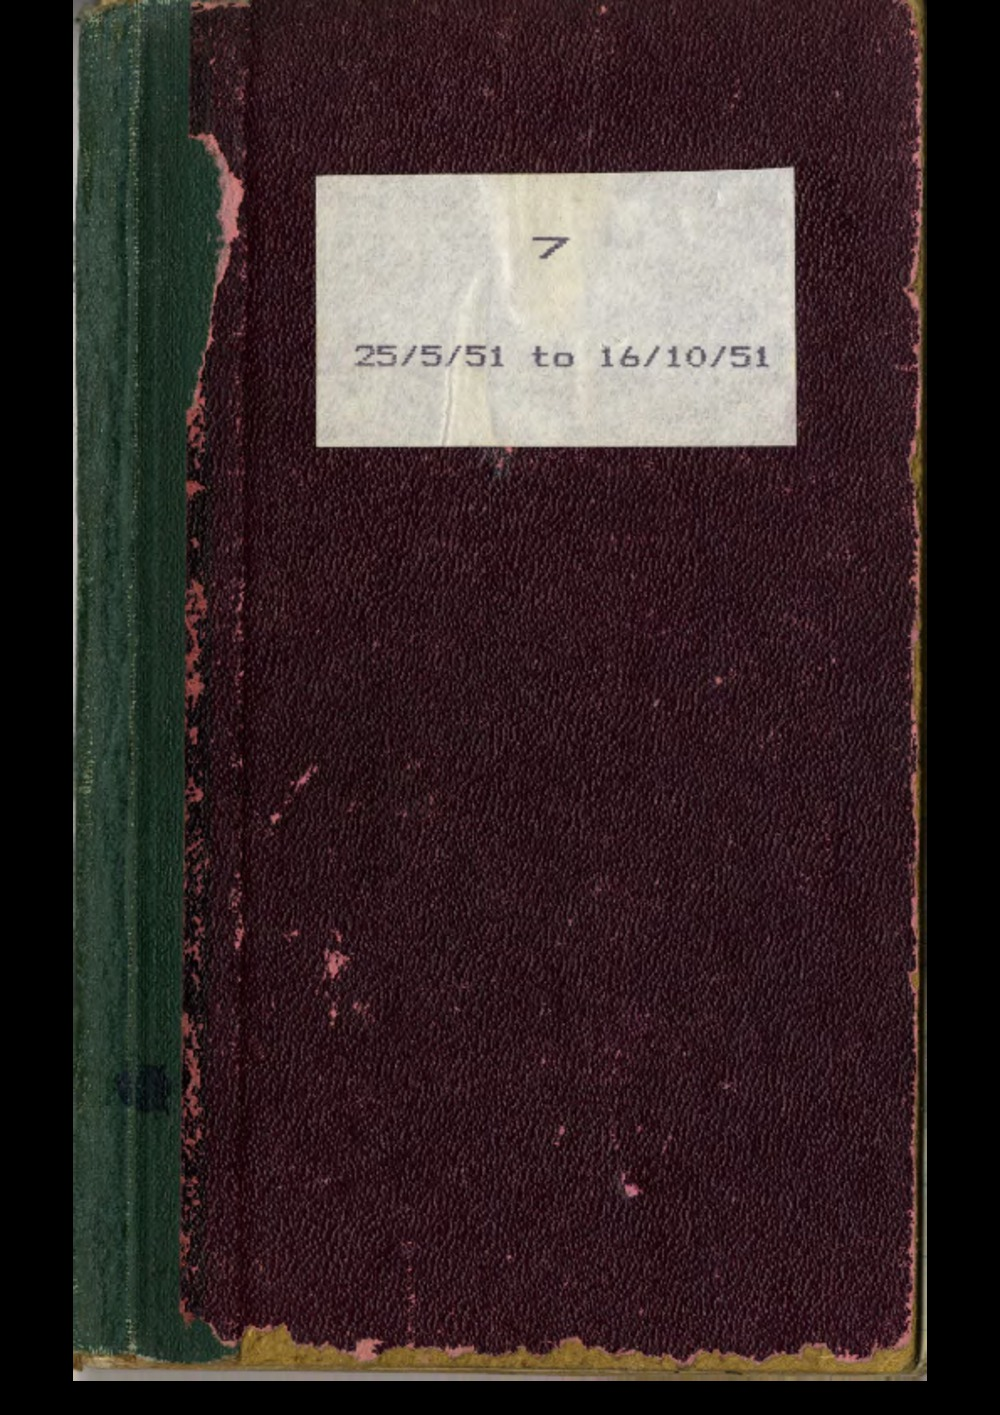 Article: Lenaerts Notebook 7 (25 May - 16 Oct 1951)